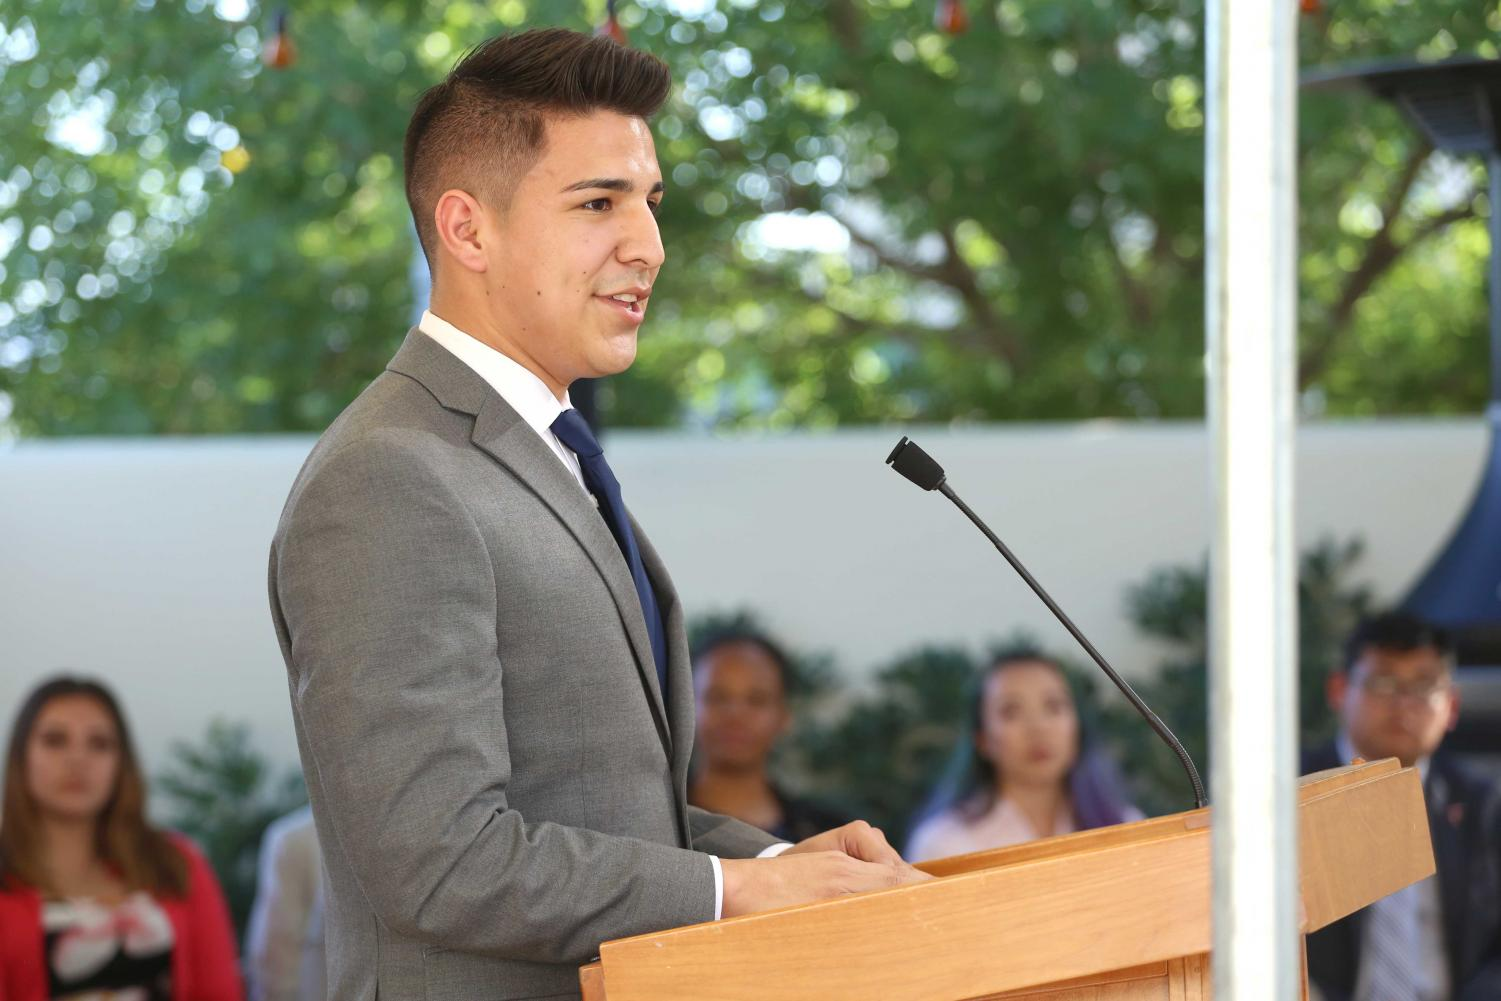 Junior+psychology+major+Cristian+Botello++gives+a+speech+after+being+sworn+in+as+SGA+President+at+the+Hoover+House+on+May+23.